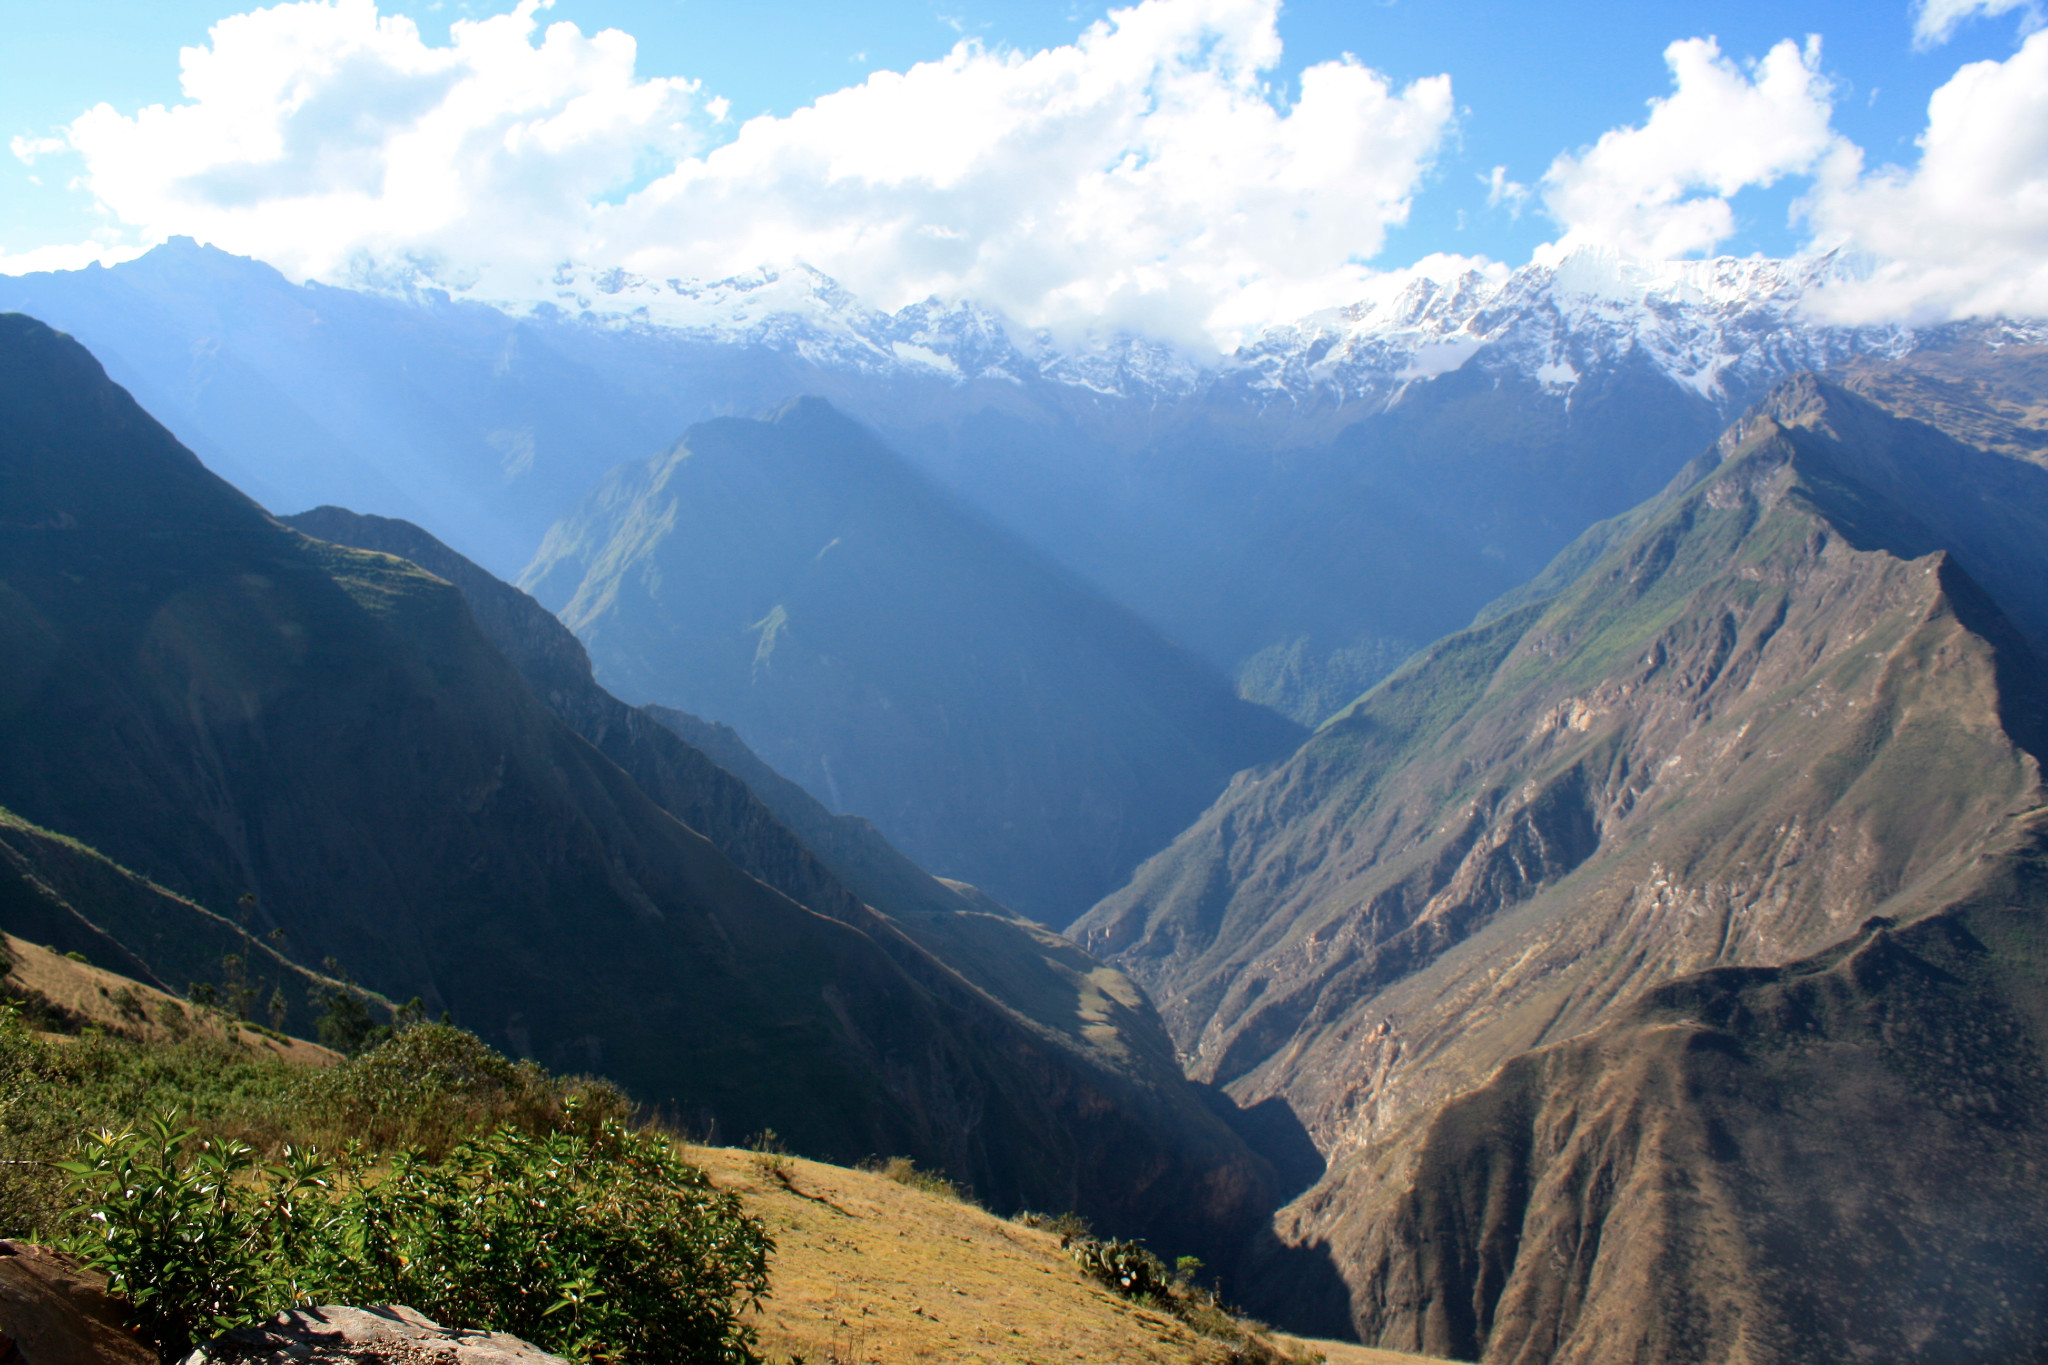 Stunning views greet you at every turn on the challenging but beautiful Choquequirao trek. Photo courtesy Diane Patterson.